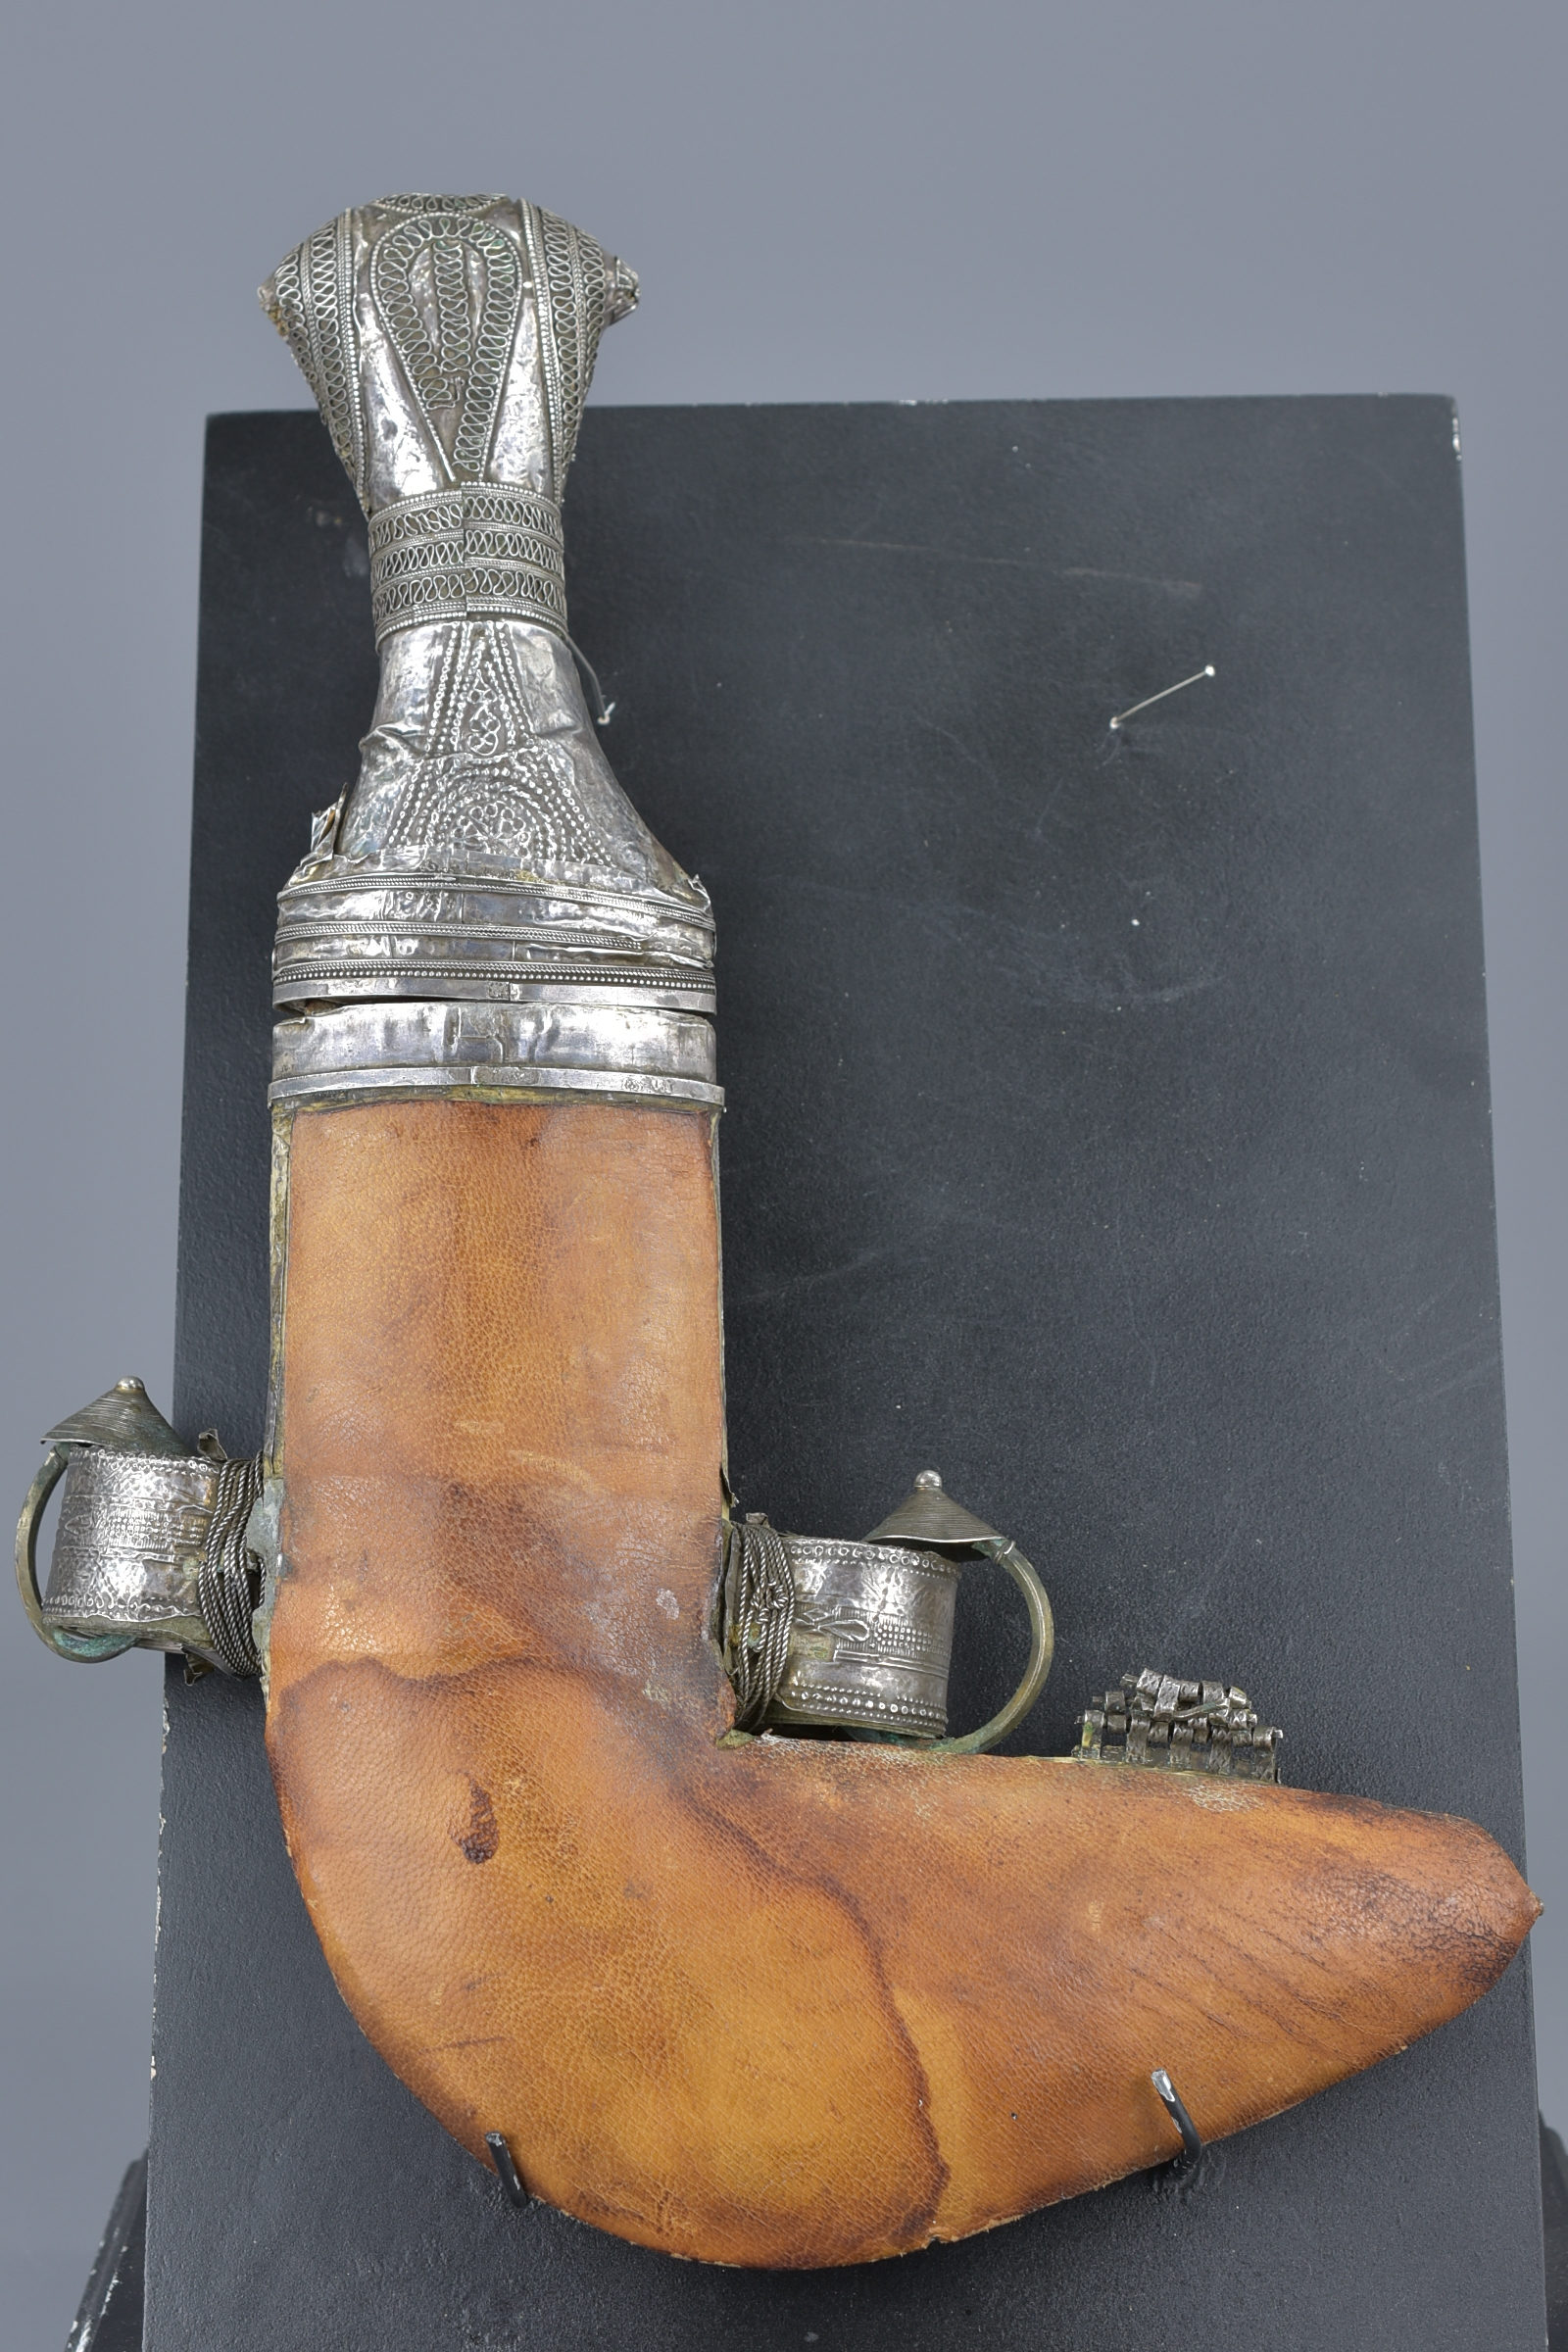 Lot 14 - A Yemenis silver-coloured metal dagger in a case on later display stand. 29cm length